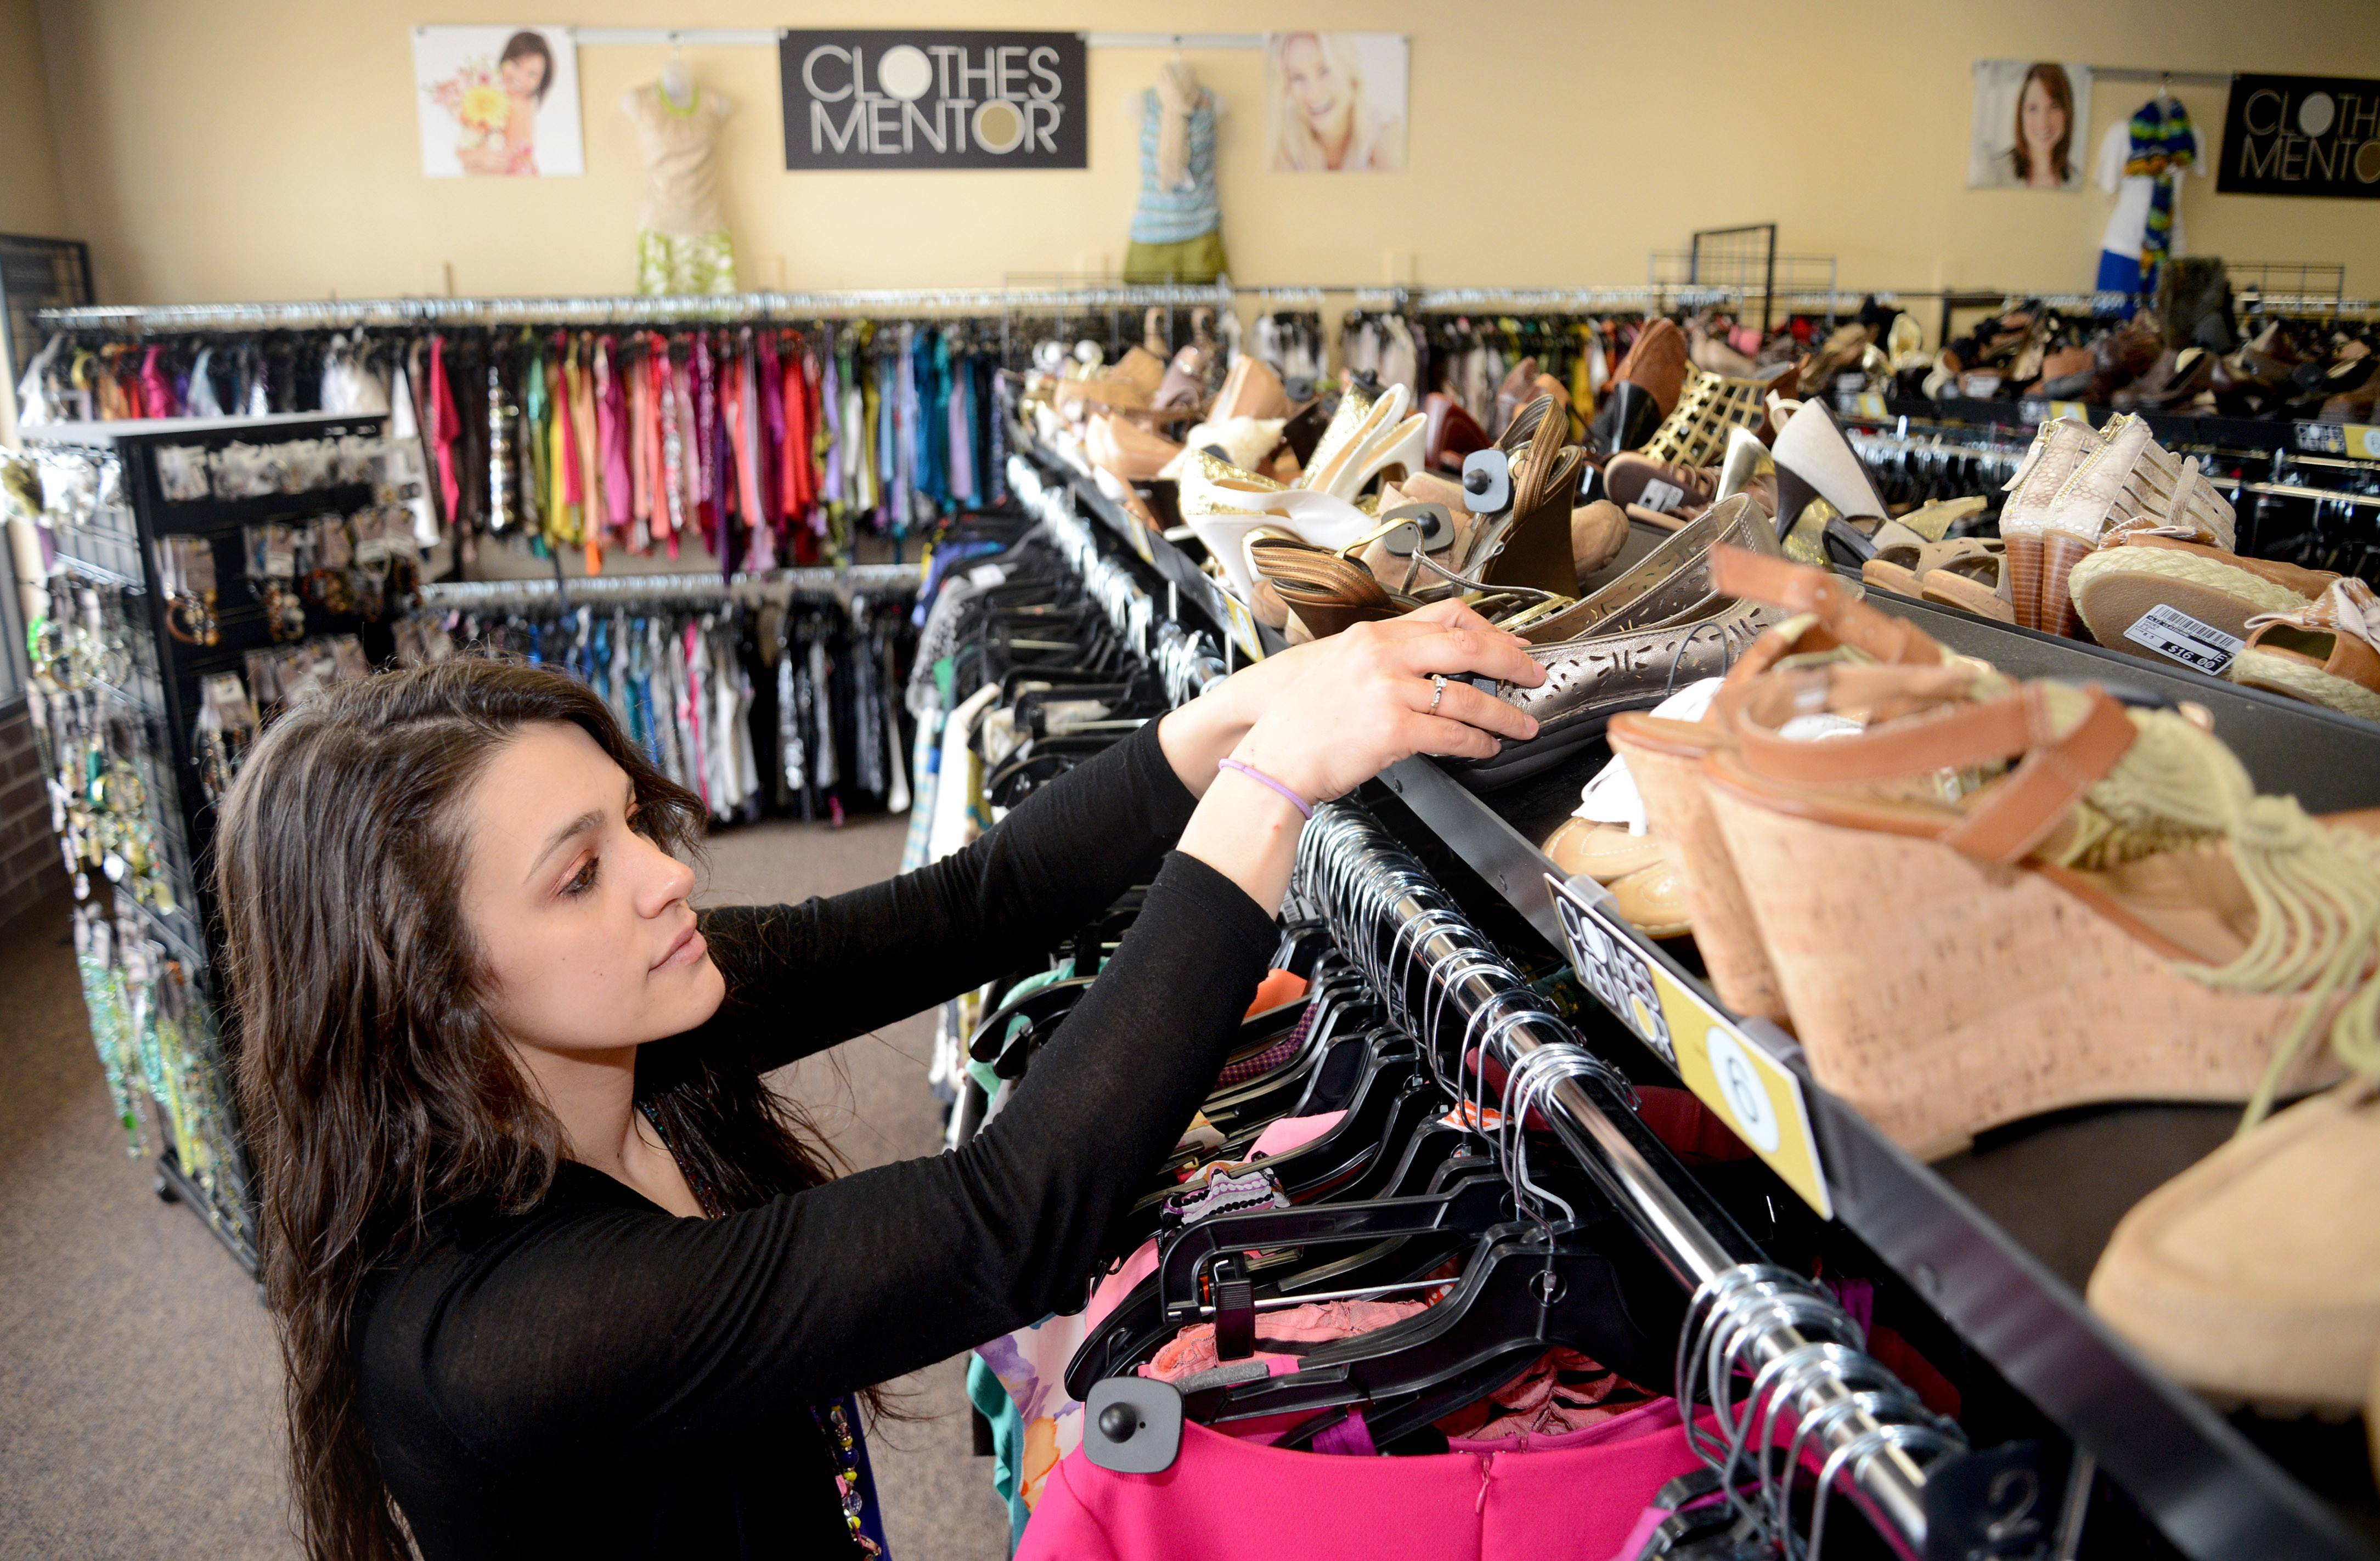 Assistant Manager Myriah Rogers straightens shoes at Clothes Mentor at 79 S. Randall Road in Batavia. The franchise store is an upscale used clothing resale shop. It buys gently used clothing, shoes and jewelry for cash. Another location in Algonquin will open at the end of June.